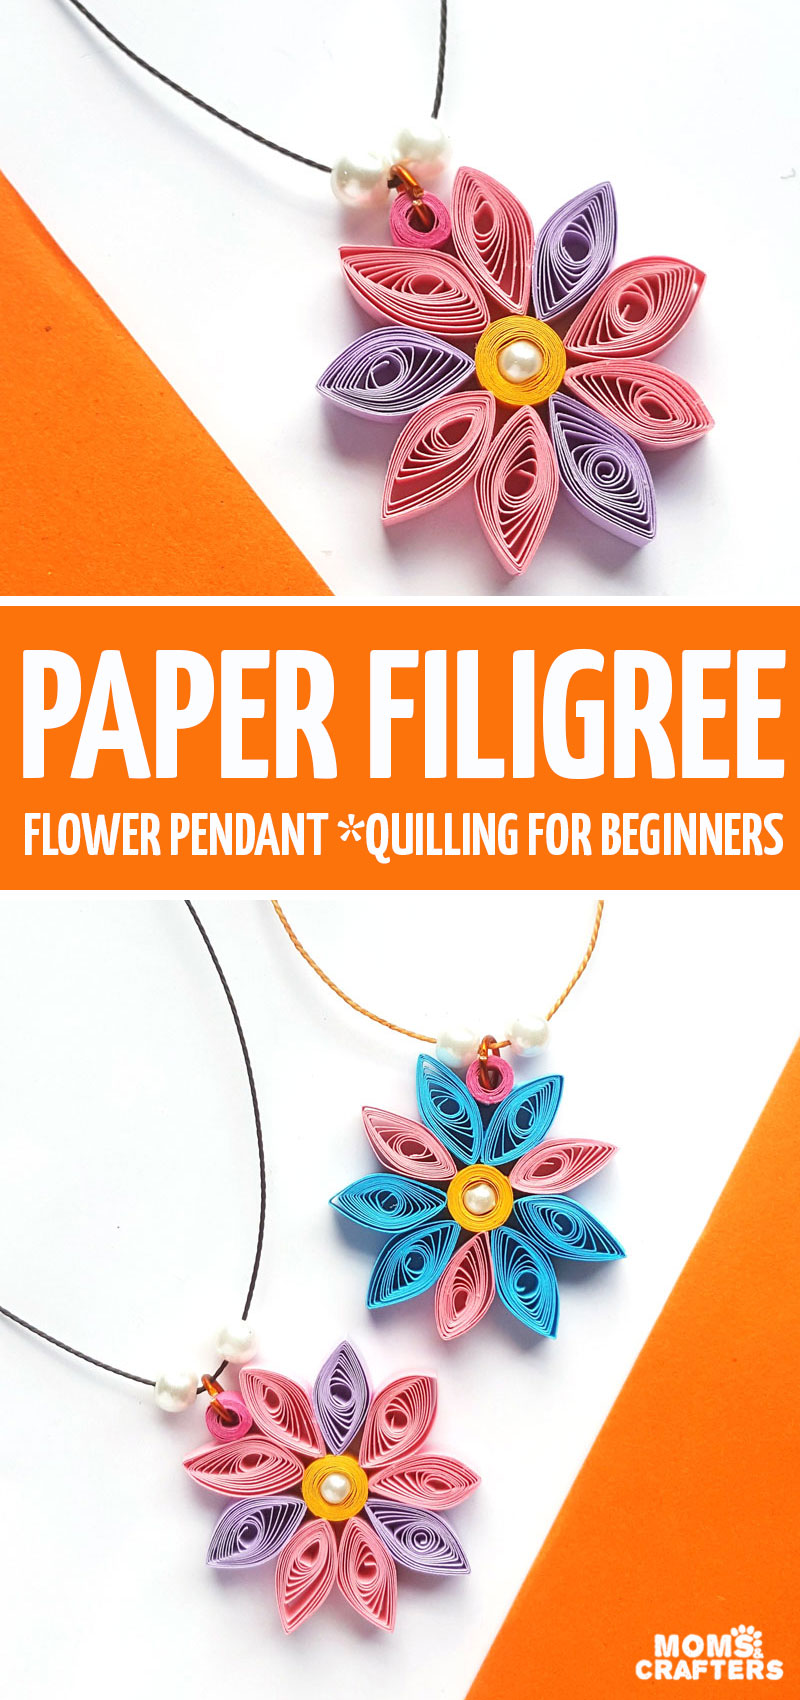 Click for the tutorial and to learn how to make these beginner paper quilling flowers and then turn them into fun paper filigree pendants! This paper quilling tutorial and ideas for beginners is perfect for kids and teens too! Quilled paper jewelry is a great way to start. #paperquilling #jewelry #craftsforkids